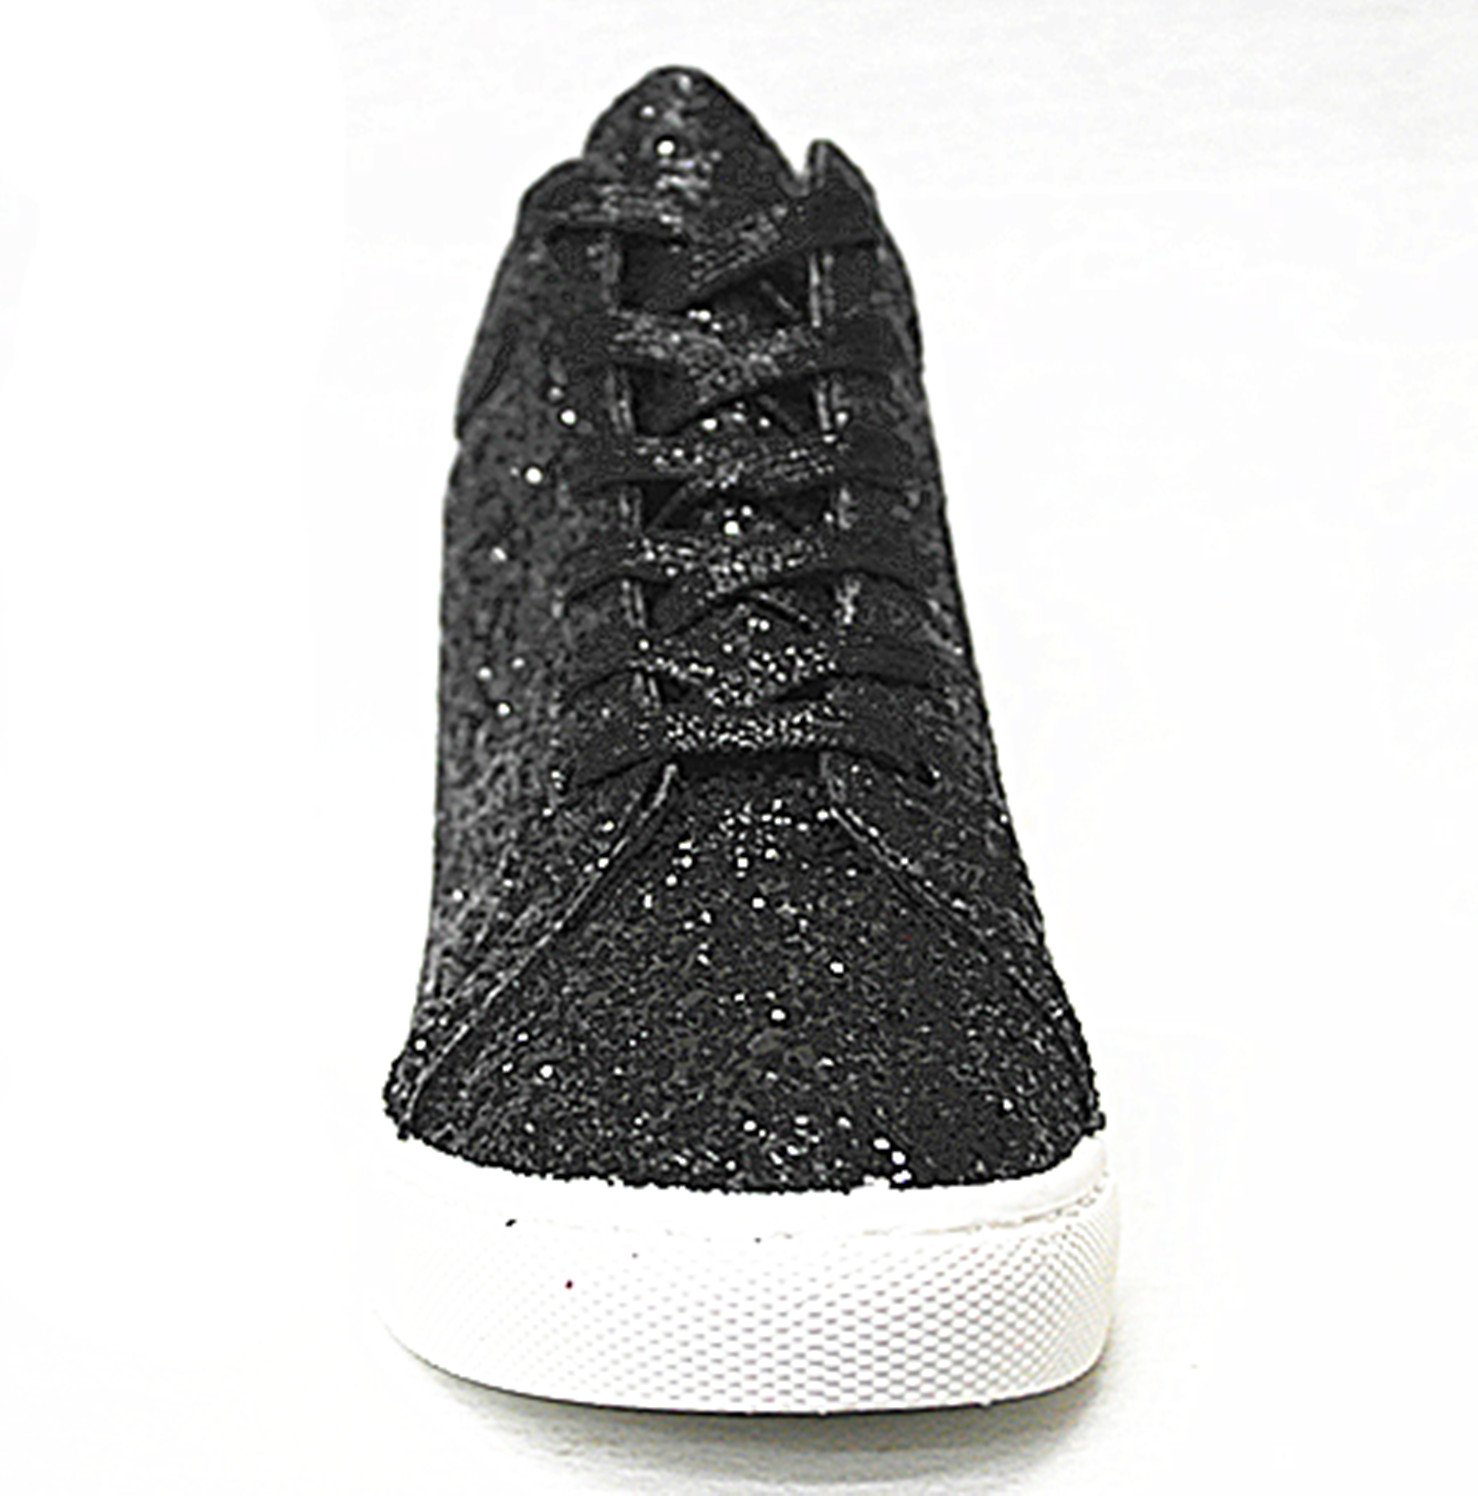 SF Forever Link Remy-18 Women's Jogger up Sneaker-Lightweight Glitter Quilted Lace up Jogger Shoes New B07BJC7629 9 B(M) US|Black-27 e5a3bb